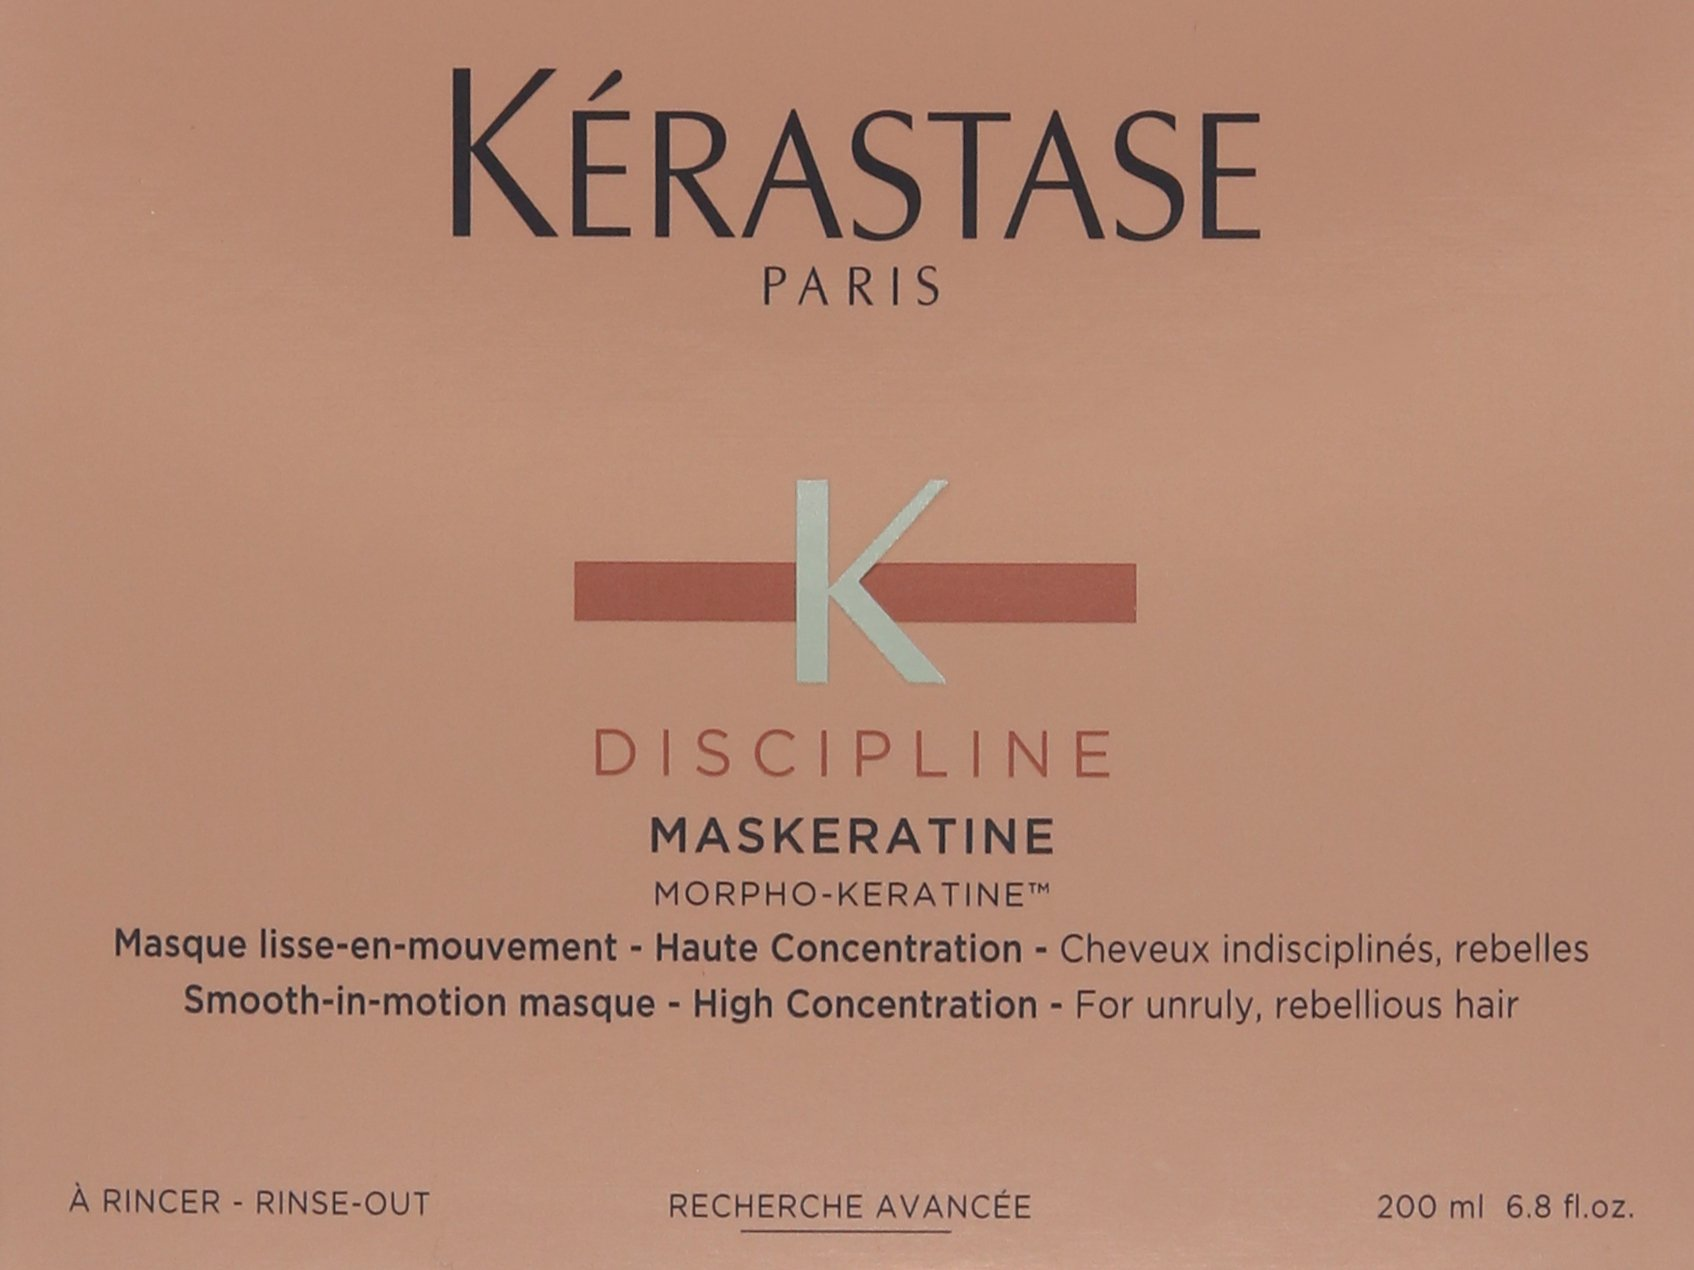 Kerastase Discipline Maskeratine Smooth-in-Motion Masque High Concentration, 6.8 Ounce by Kerastase (Image #3)